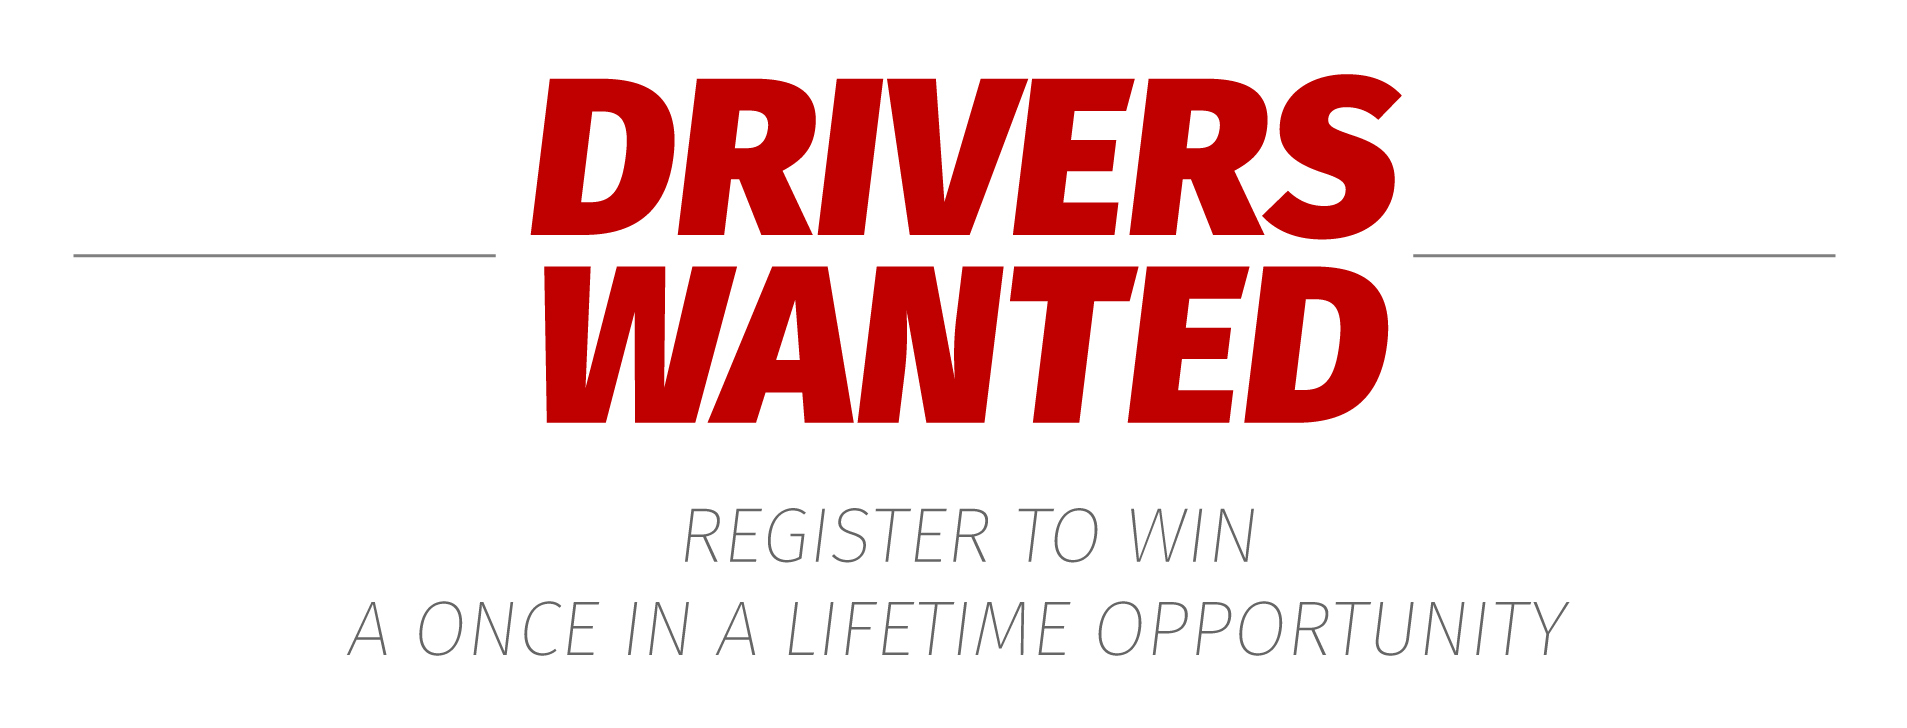 Drivers Wanted - Register today to be one of the first to drive the Nautilus Engine technology!